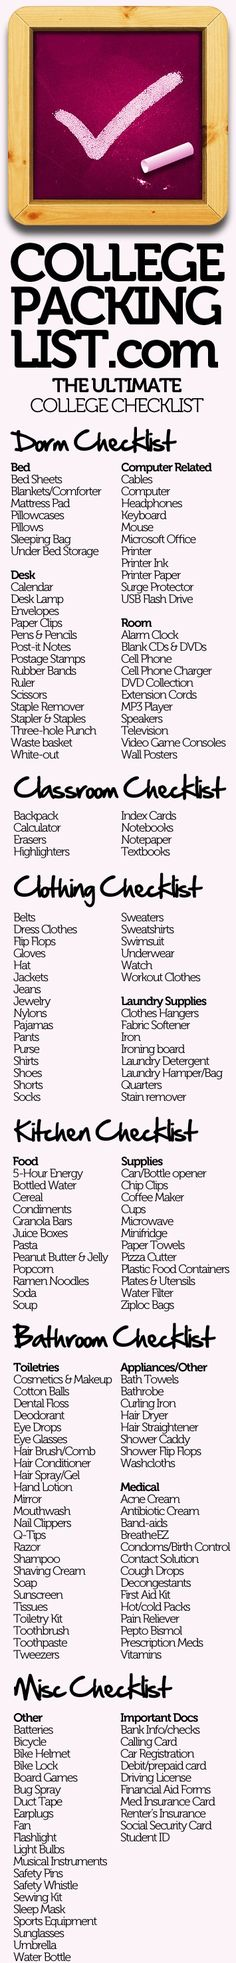 Not sure what you should pack for living on res? This packing list will give you a pretty good idea as to what you should bring along!